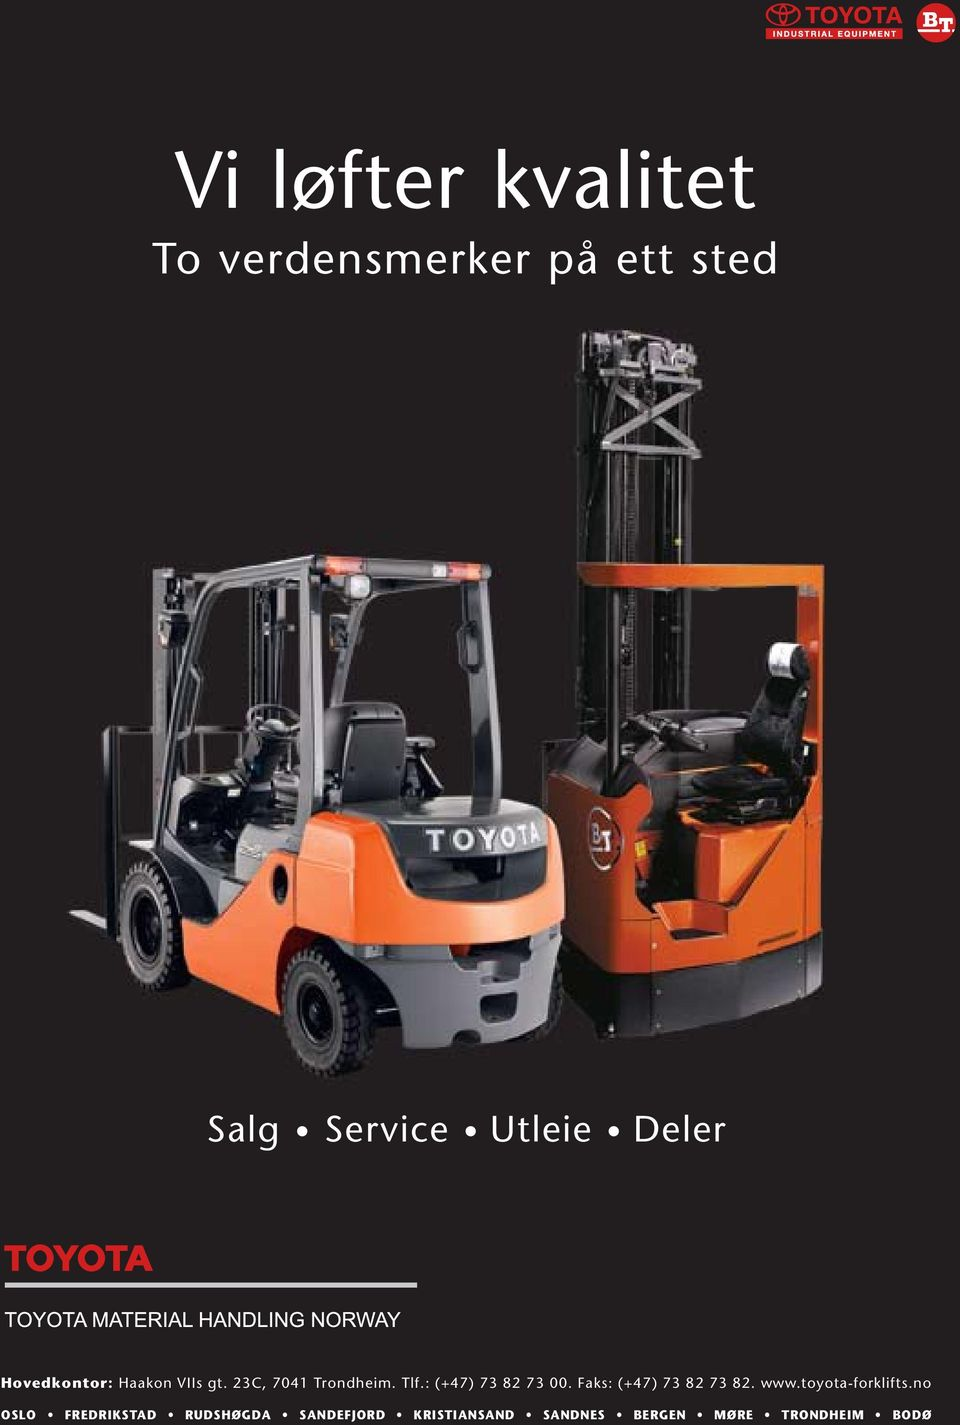 : (+47) 73 82 73 00. Faks: (+47) 73 82 73 82. www.toyota-forklifts.